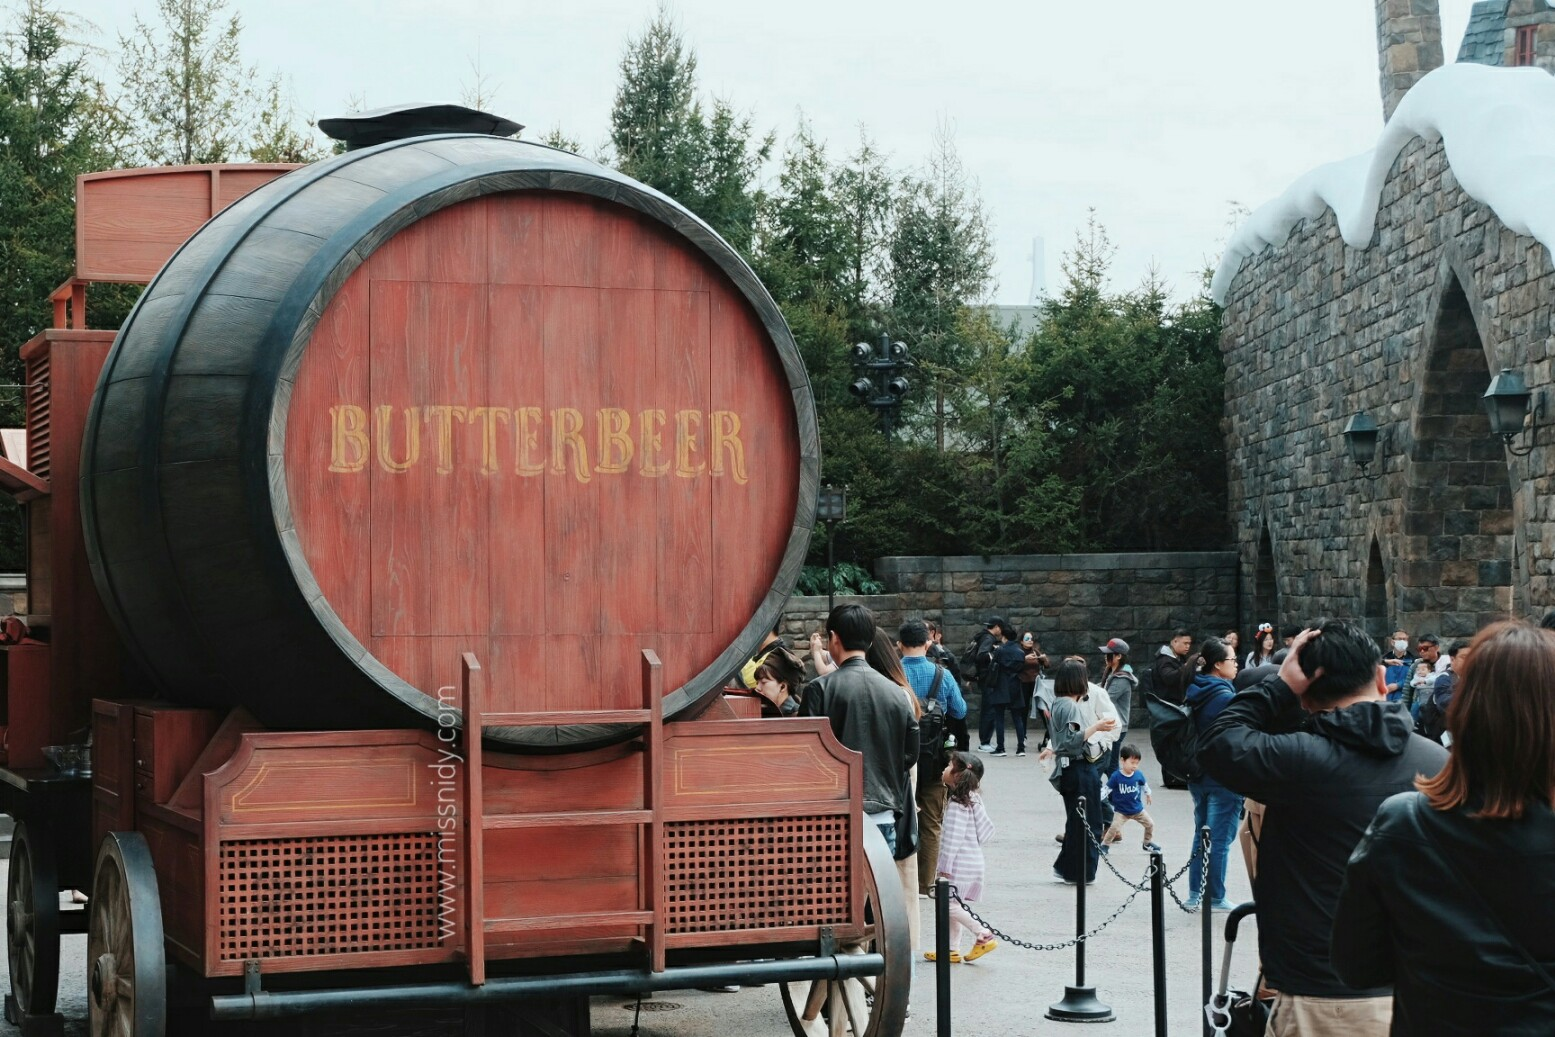 butterbeer price in USJ